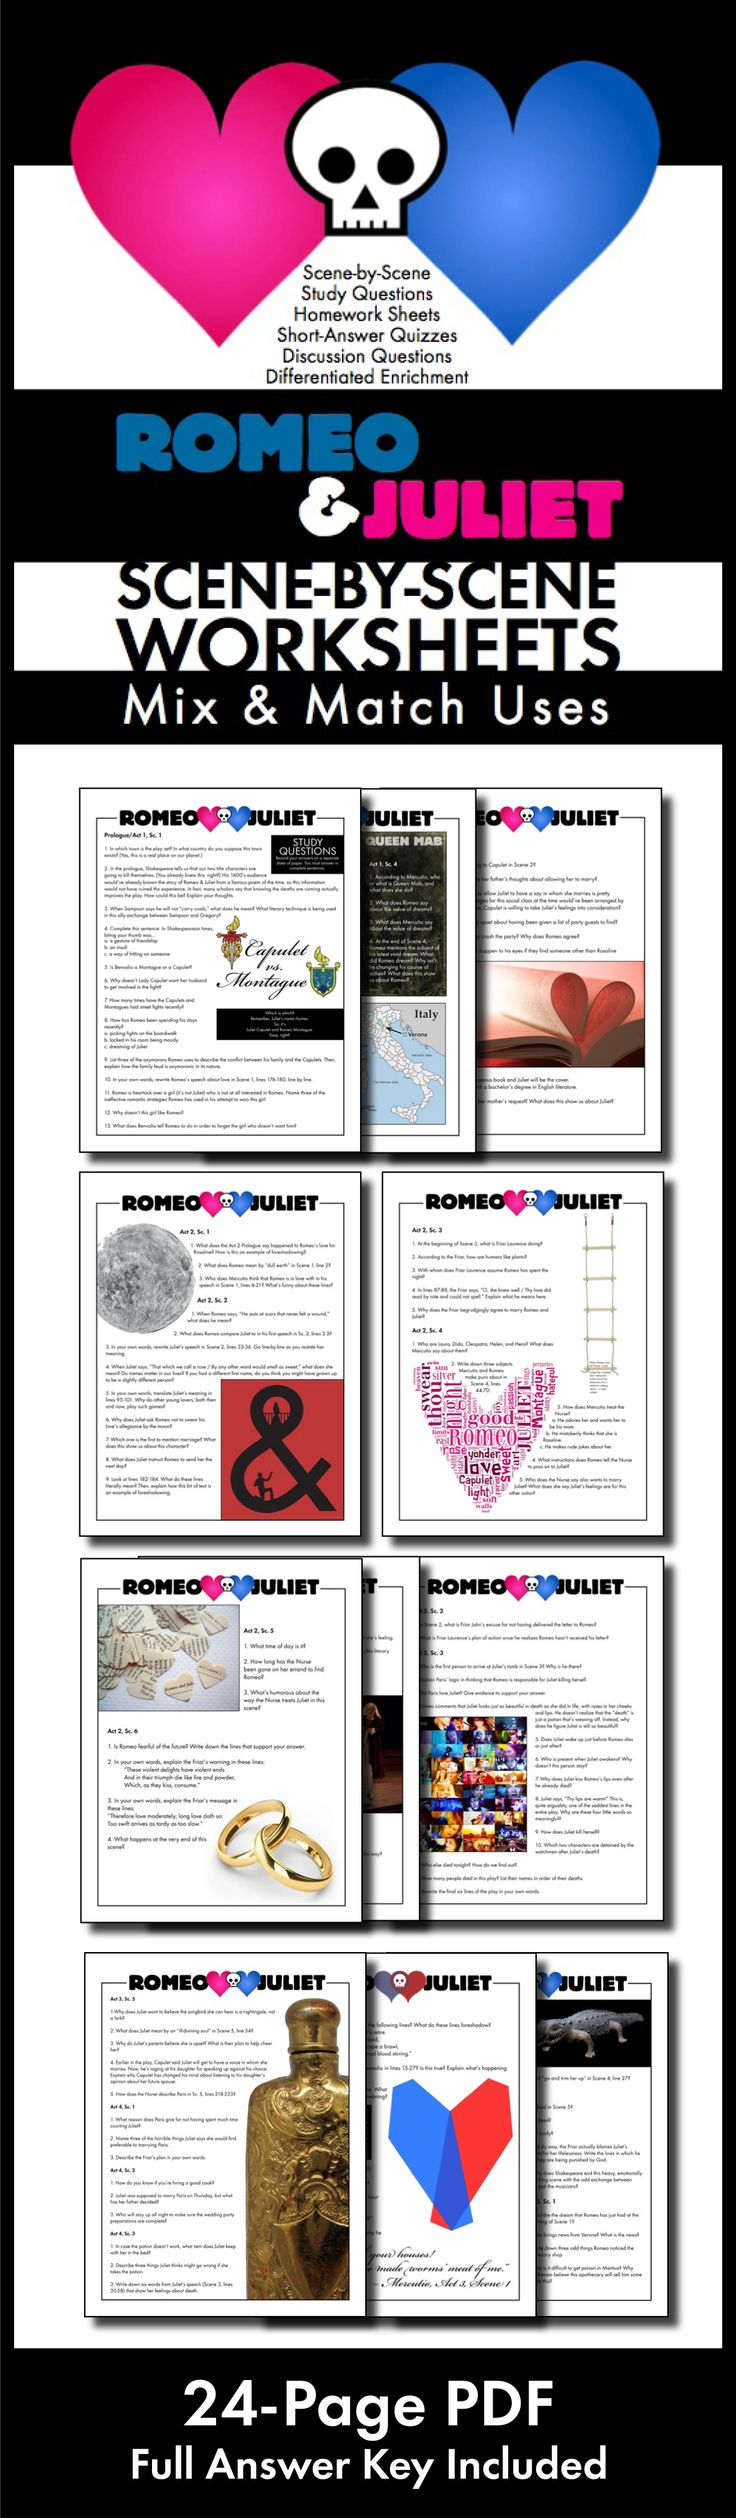 17 best ideas about romeo and juliet literature romeo juliet worksheets quizzes homework discussion for shakespeare s play